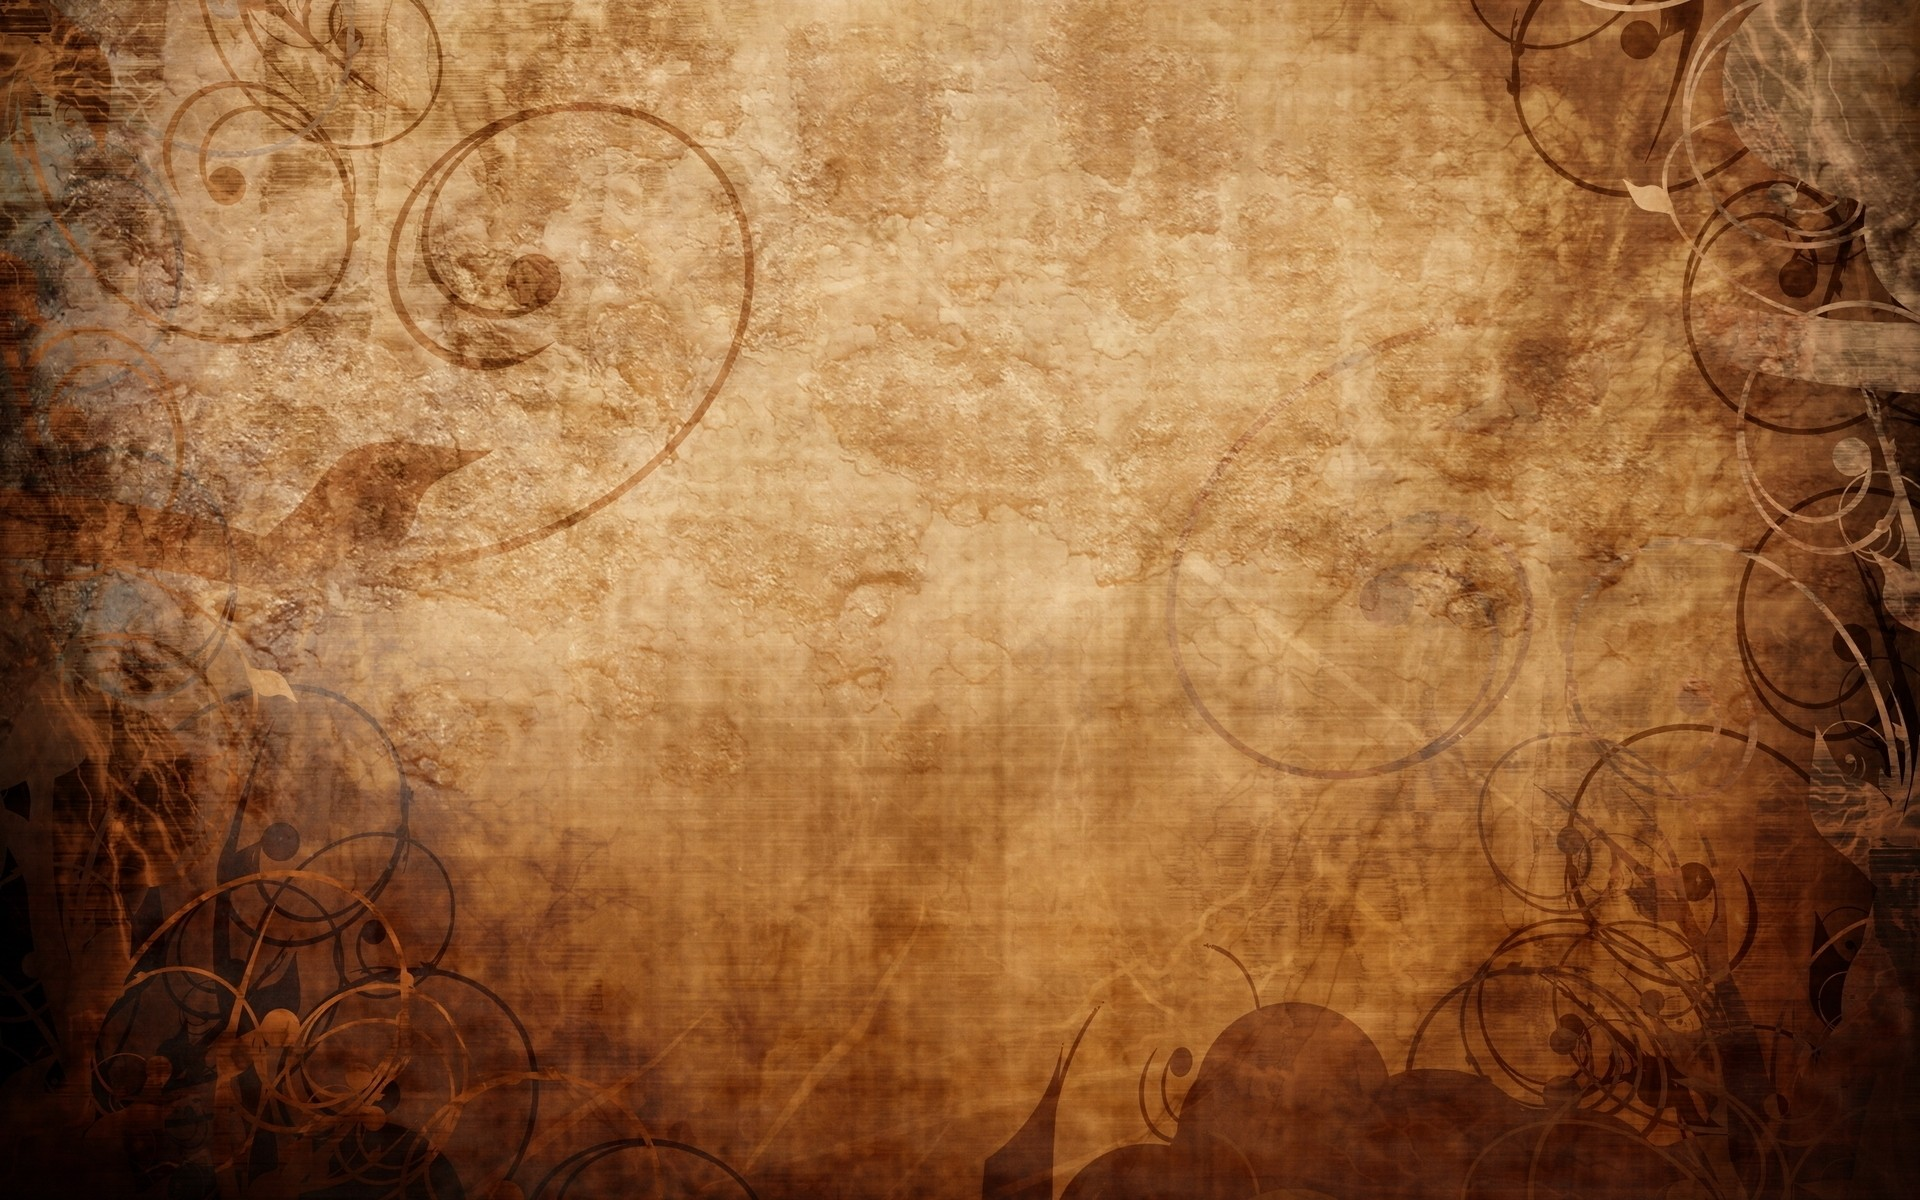 Brown Grunge Background Pattern 609.08 Kb